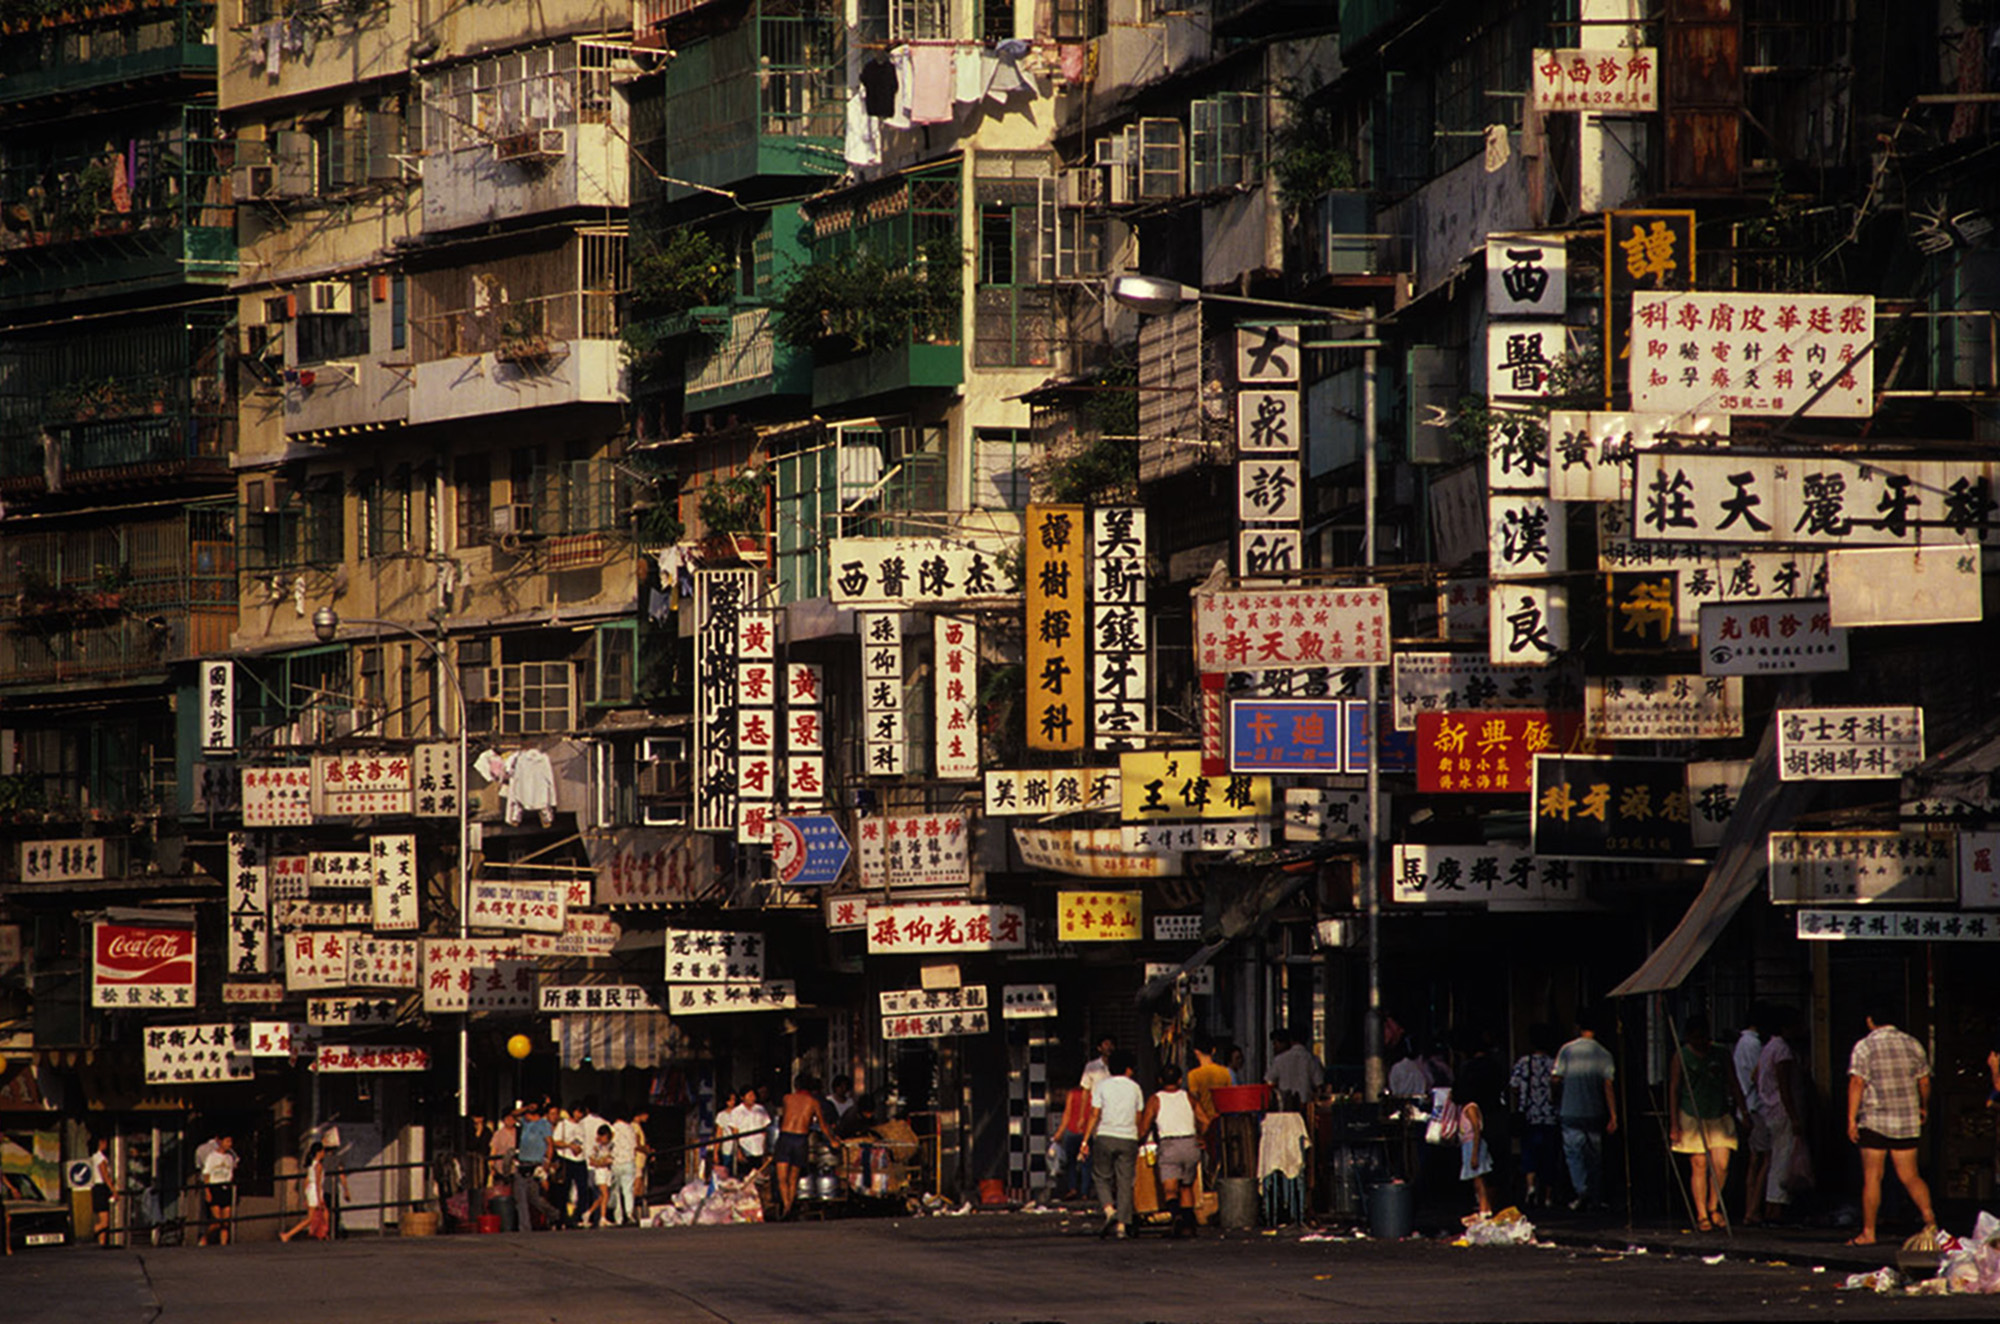 Walled City, Tung Tau Tsuen Rd, 1987